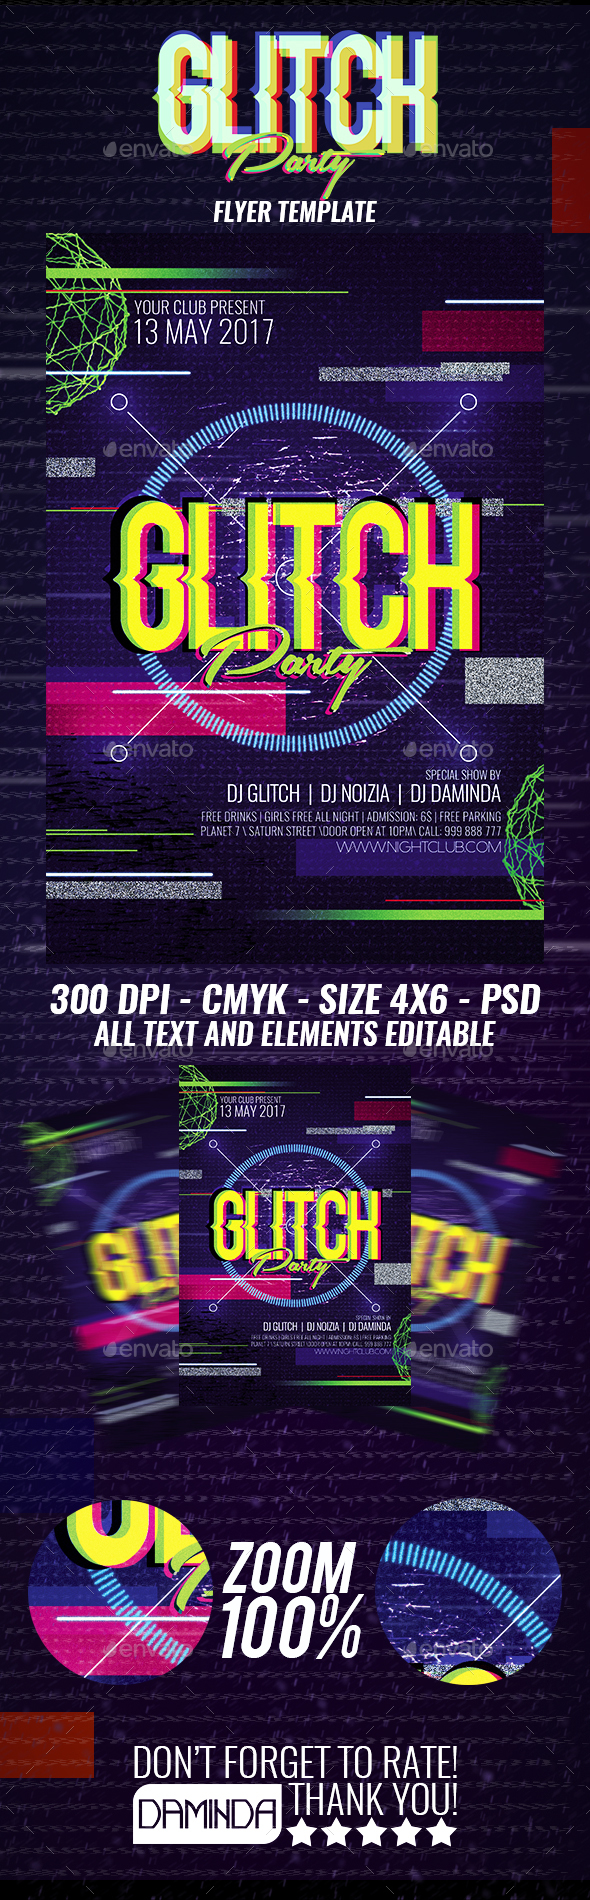 Glitch Party Flyer Template - Clubs & Parties Events